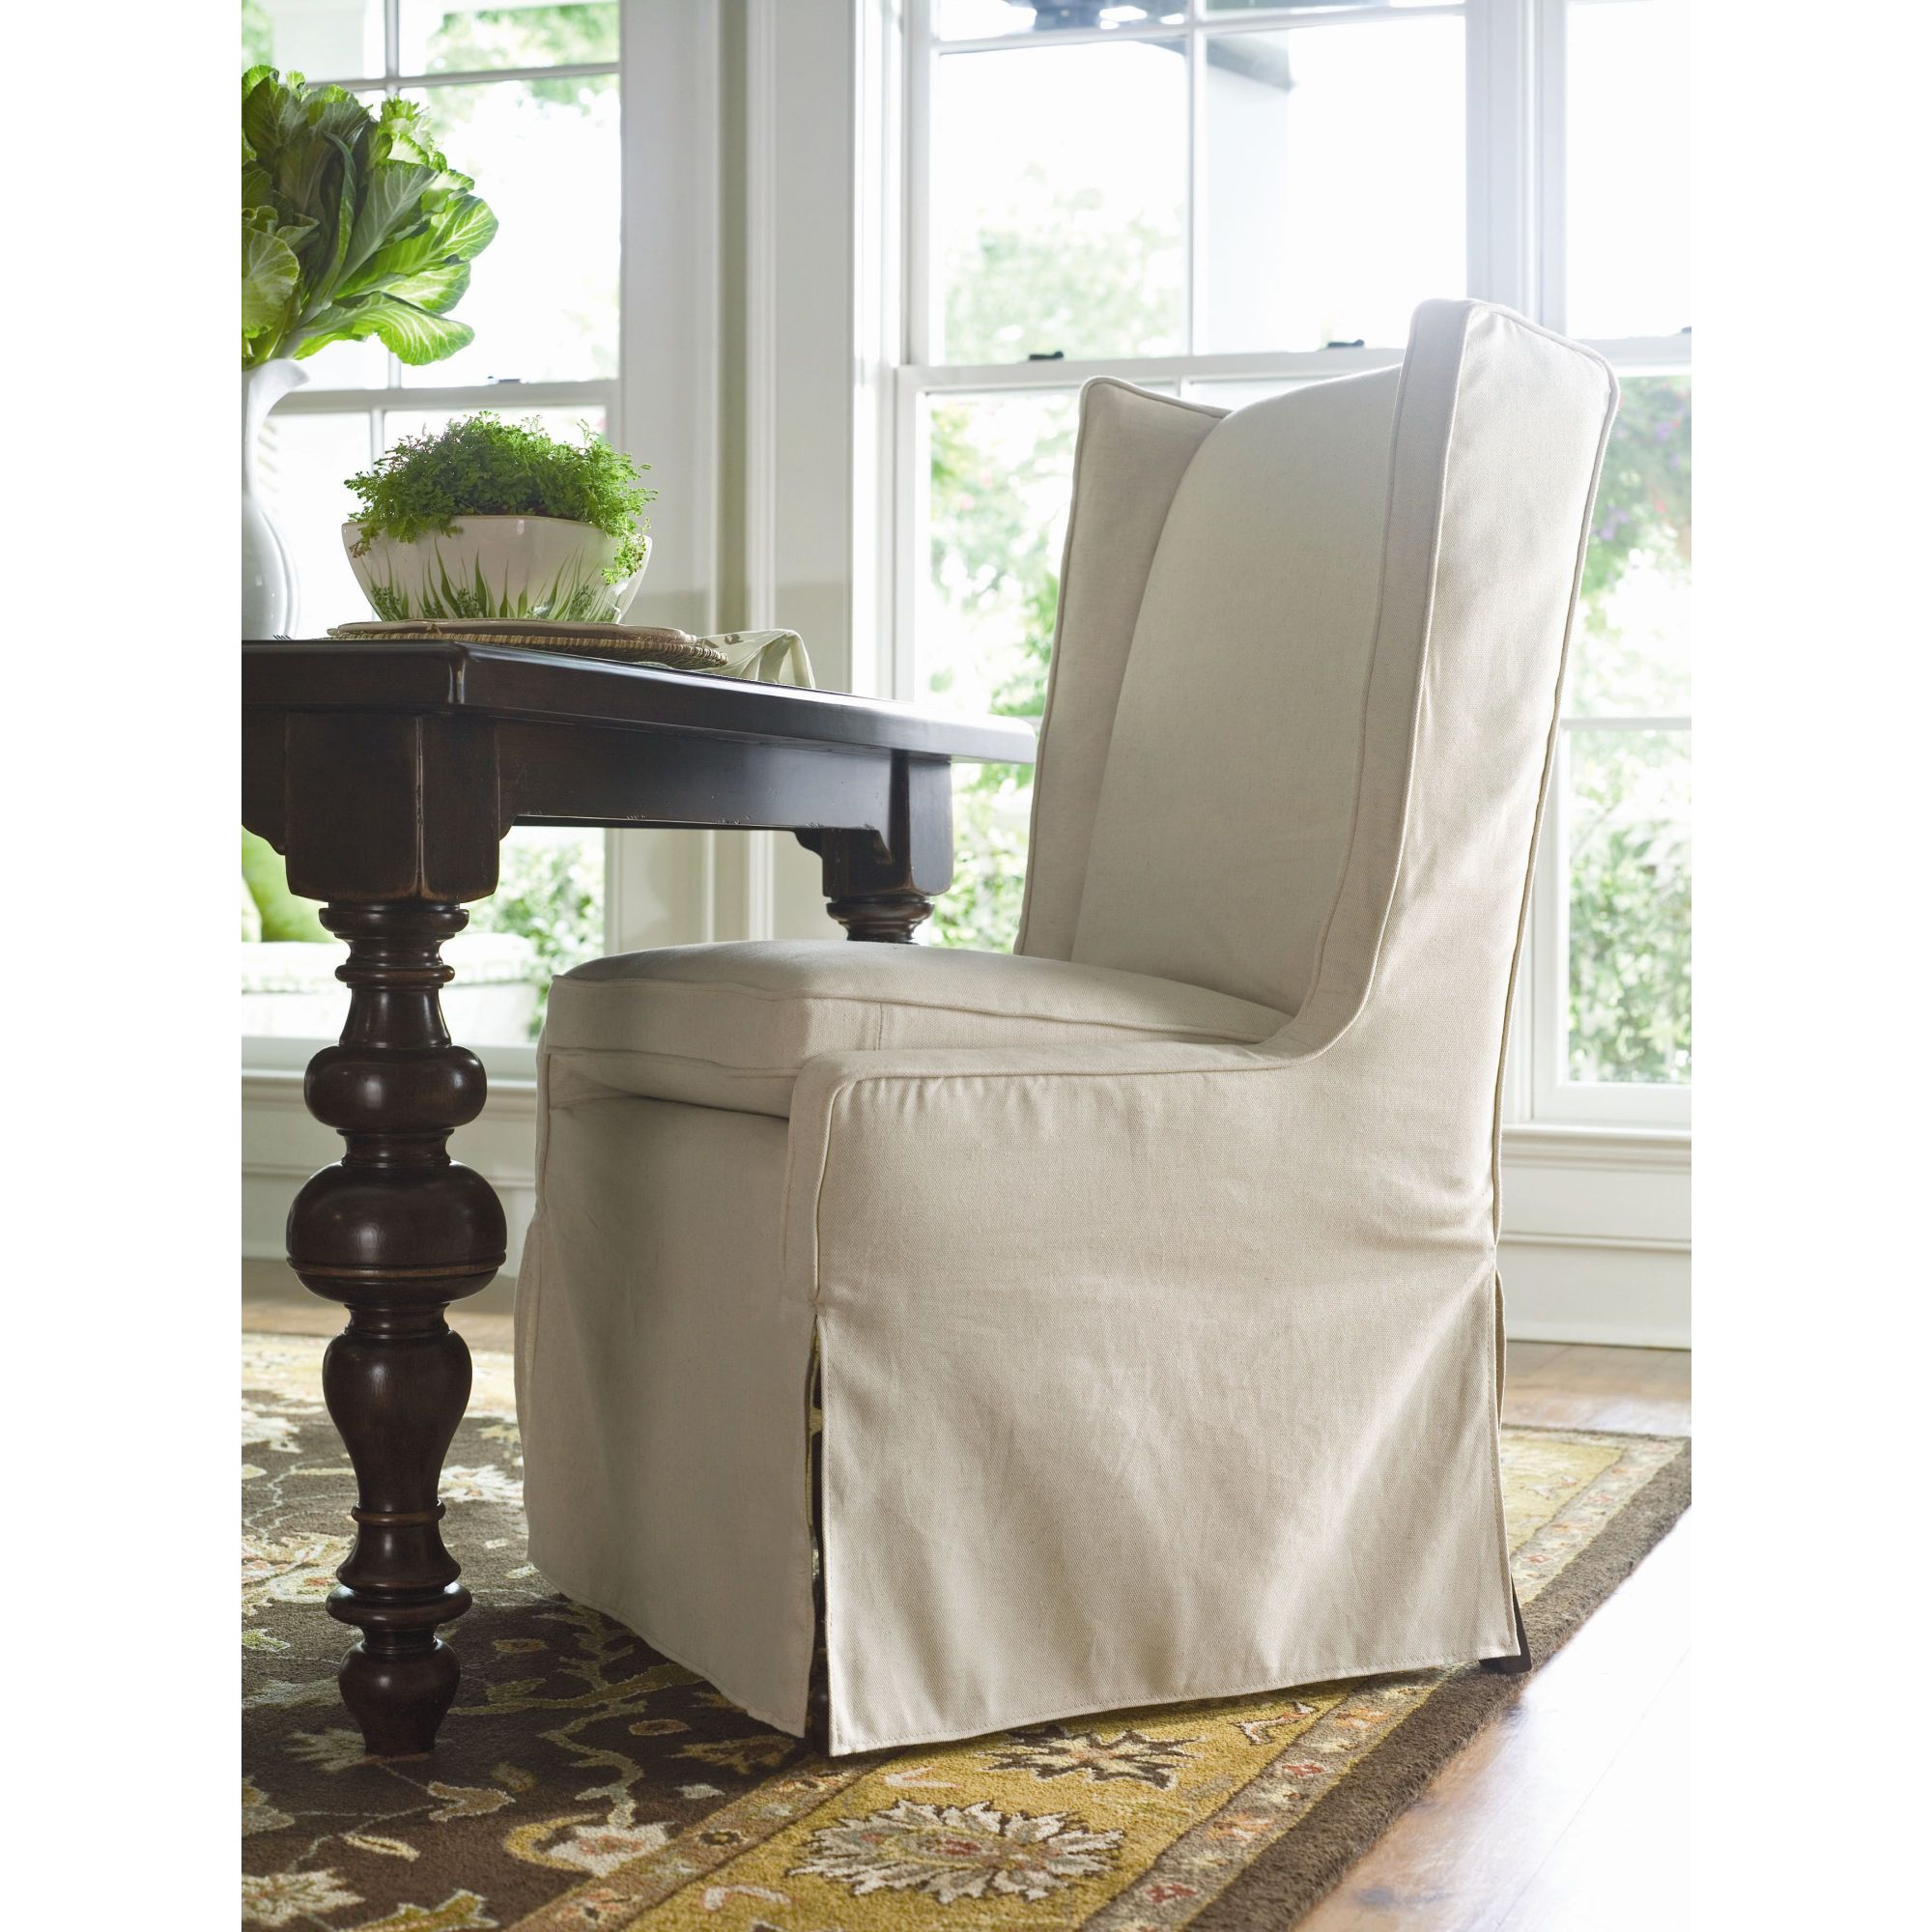 Paula Deen Wingback Dining Chair Surprisingly Cute And A Good Price Too